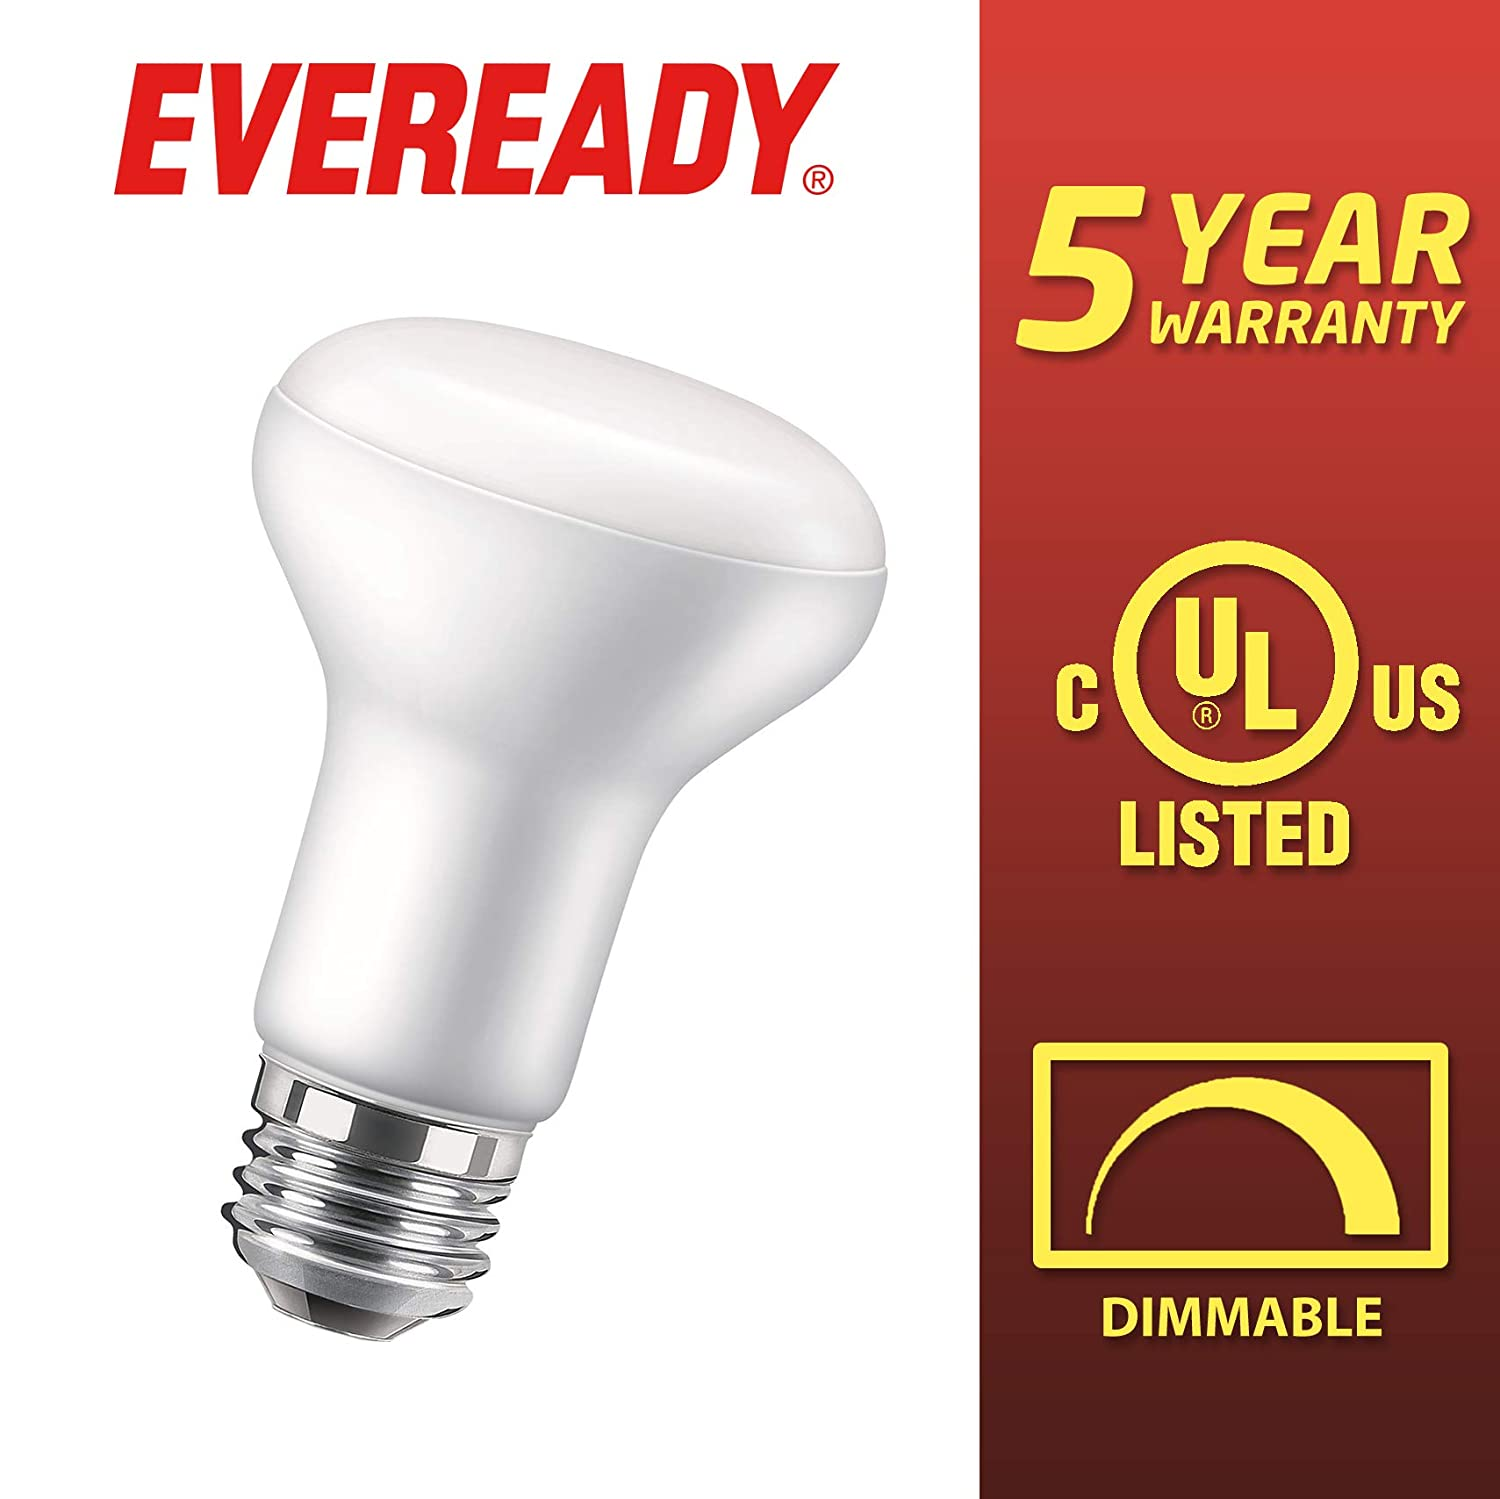 2700K Soft White Color 24 Pack 10W Flood Light 65W Equivalent E26 Base 25,000 Hours Lighting Lifespan Energy Star Certified Eveready BR30 LED Dimmable Light Bulbs UL Listed 850 Lumens